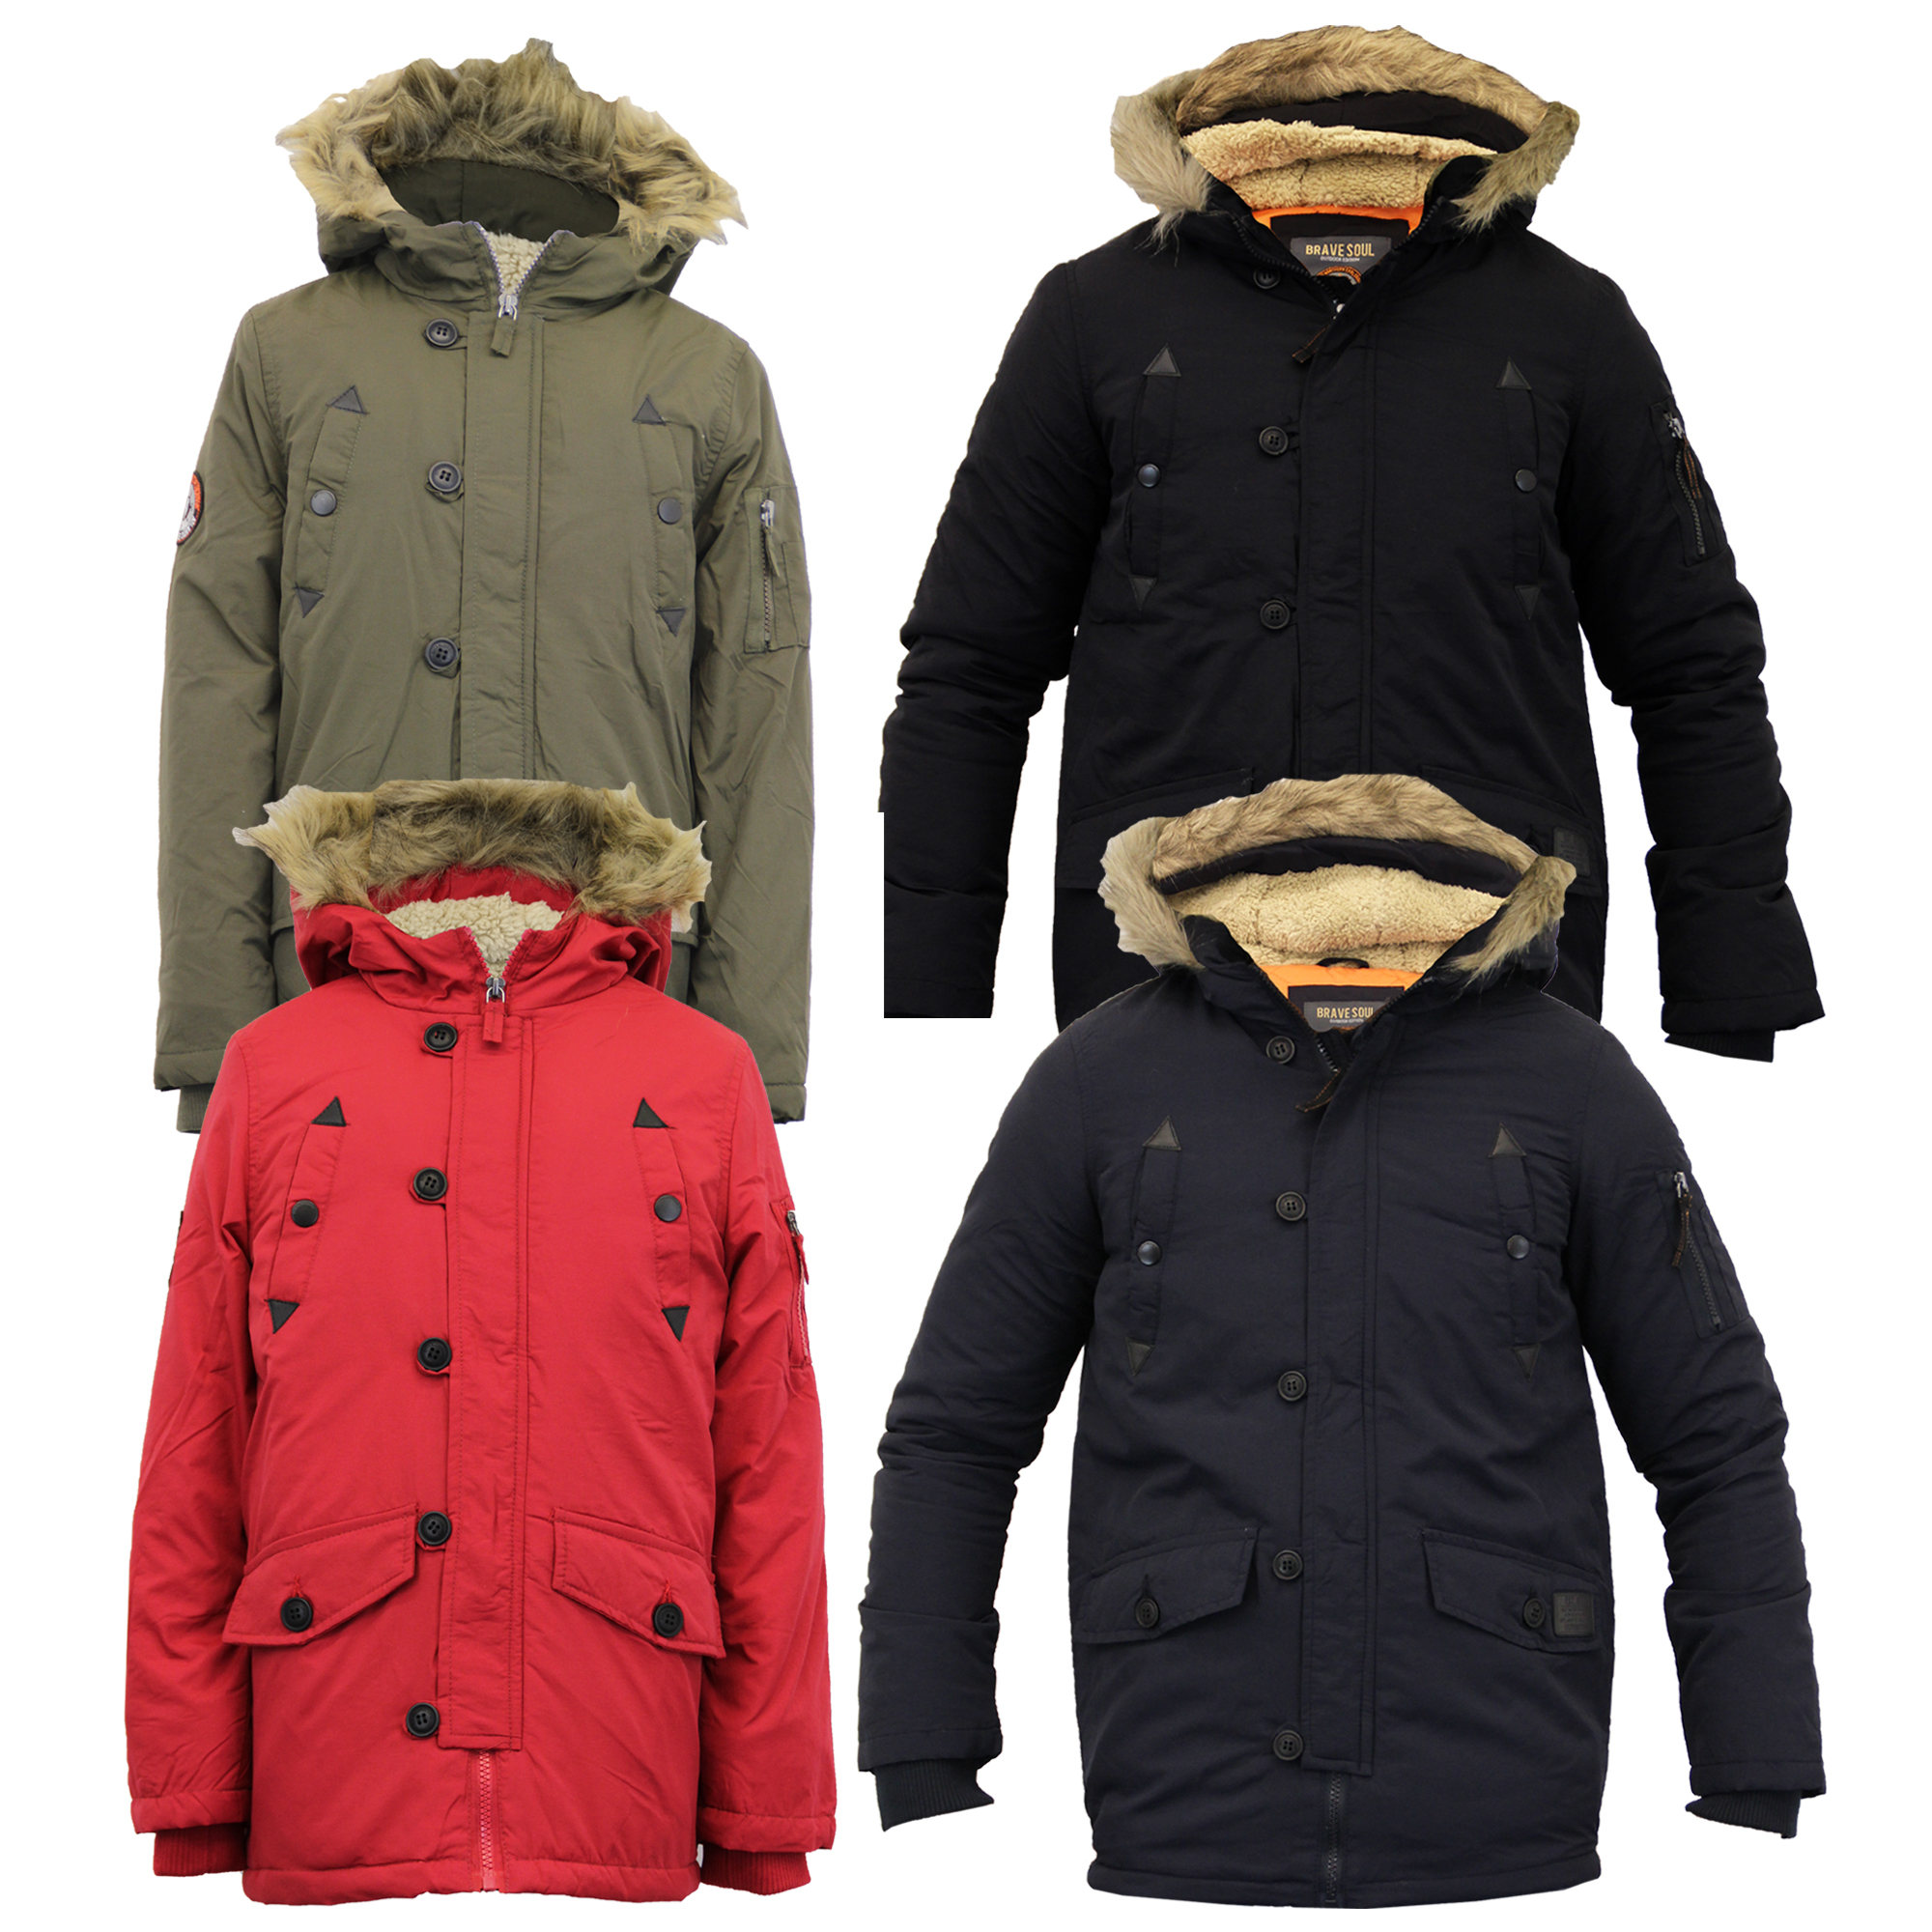 cac41feb1 Boys School Jacket Kid Parka Coat Brave Soul Padded Sherpa Hood Fur ...